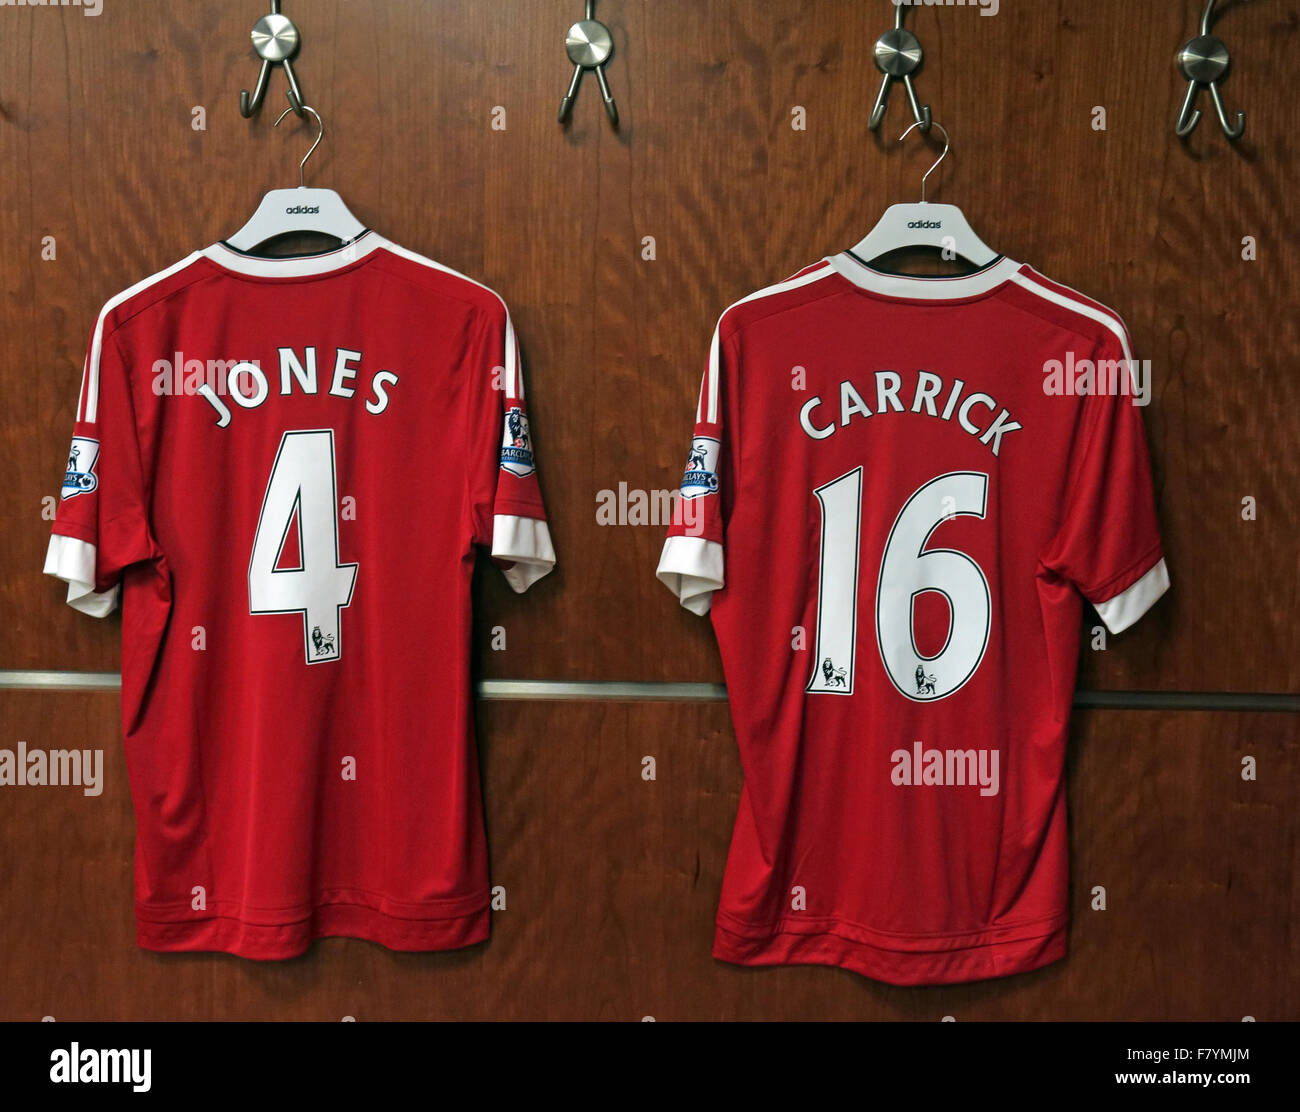 Jones & Carrick 4 & 16 MUFC rouge shirts, dressing, Old Trafford, Manchester, Angleterre Photo Stock